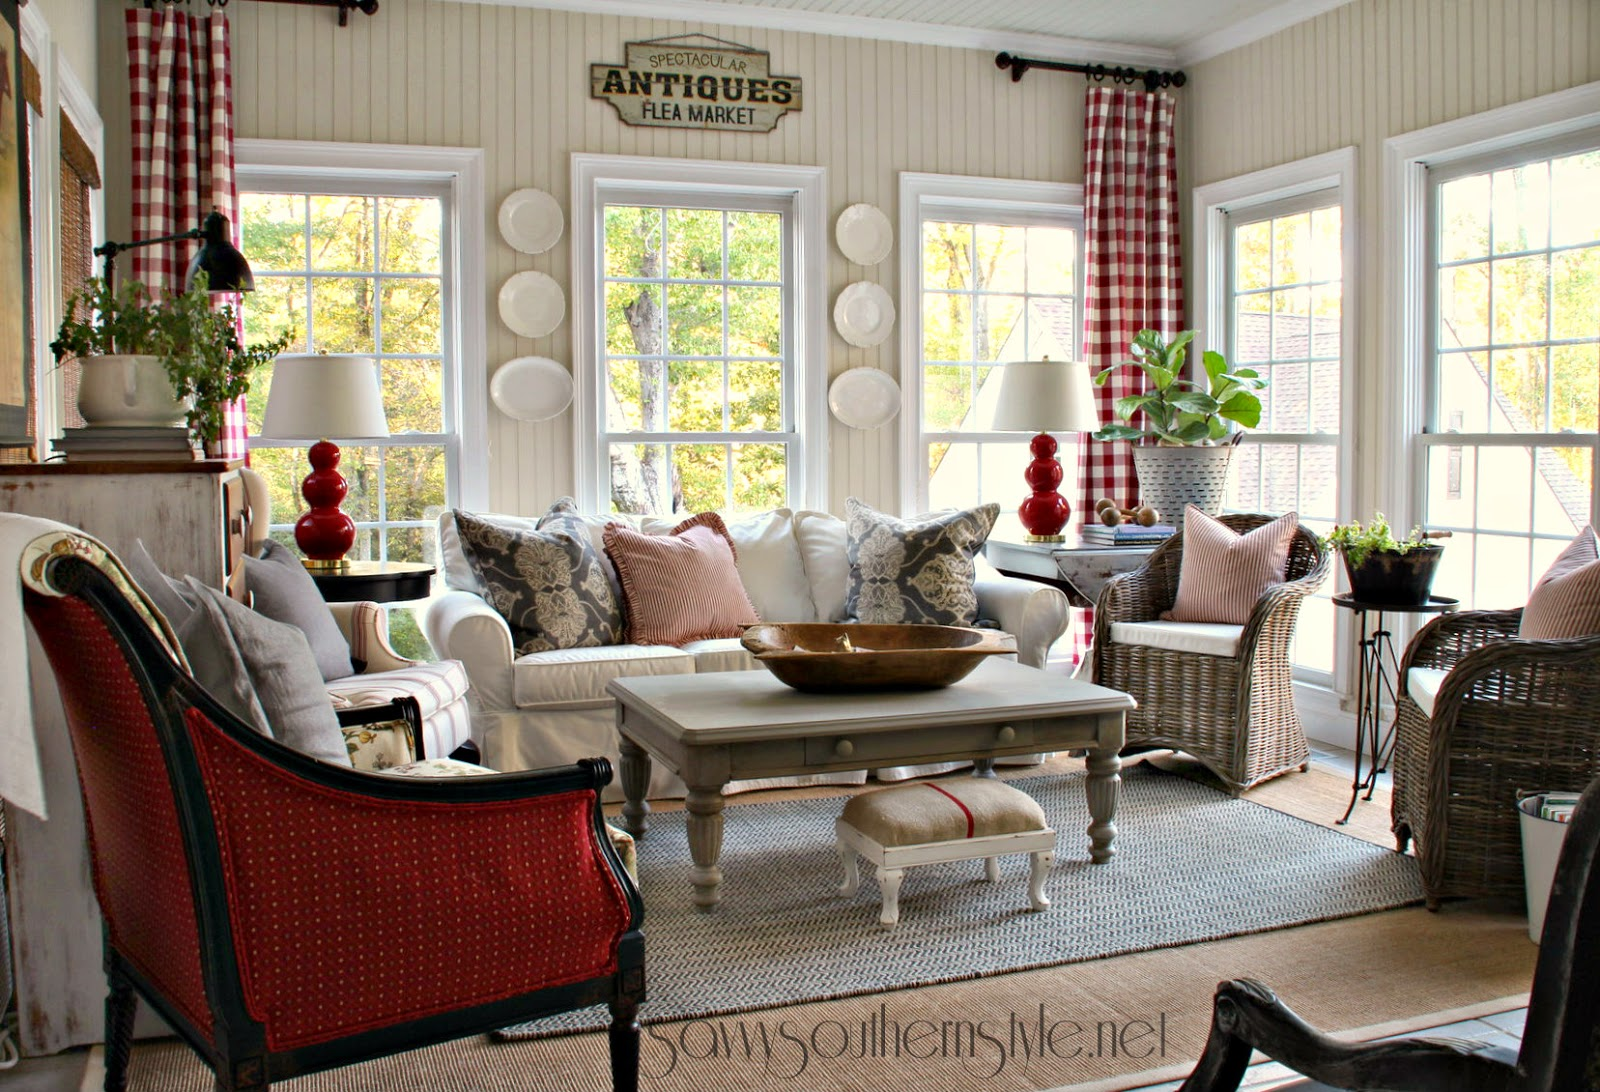 Savvy Southern Style New Red Gray Additions In The Sun Room